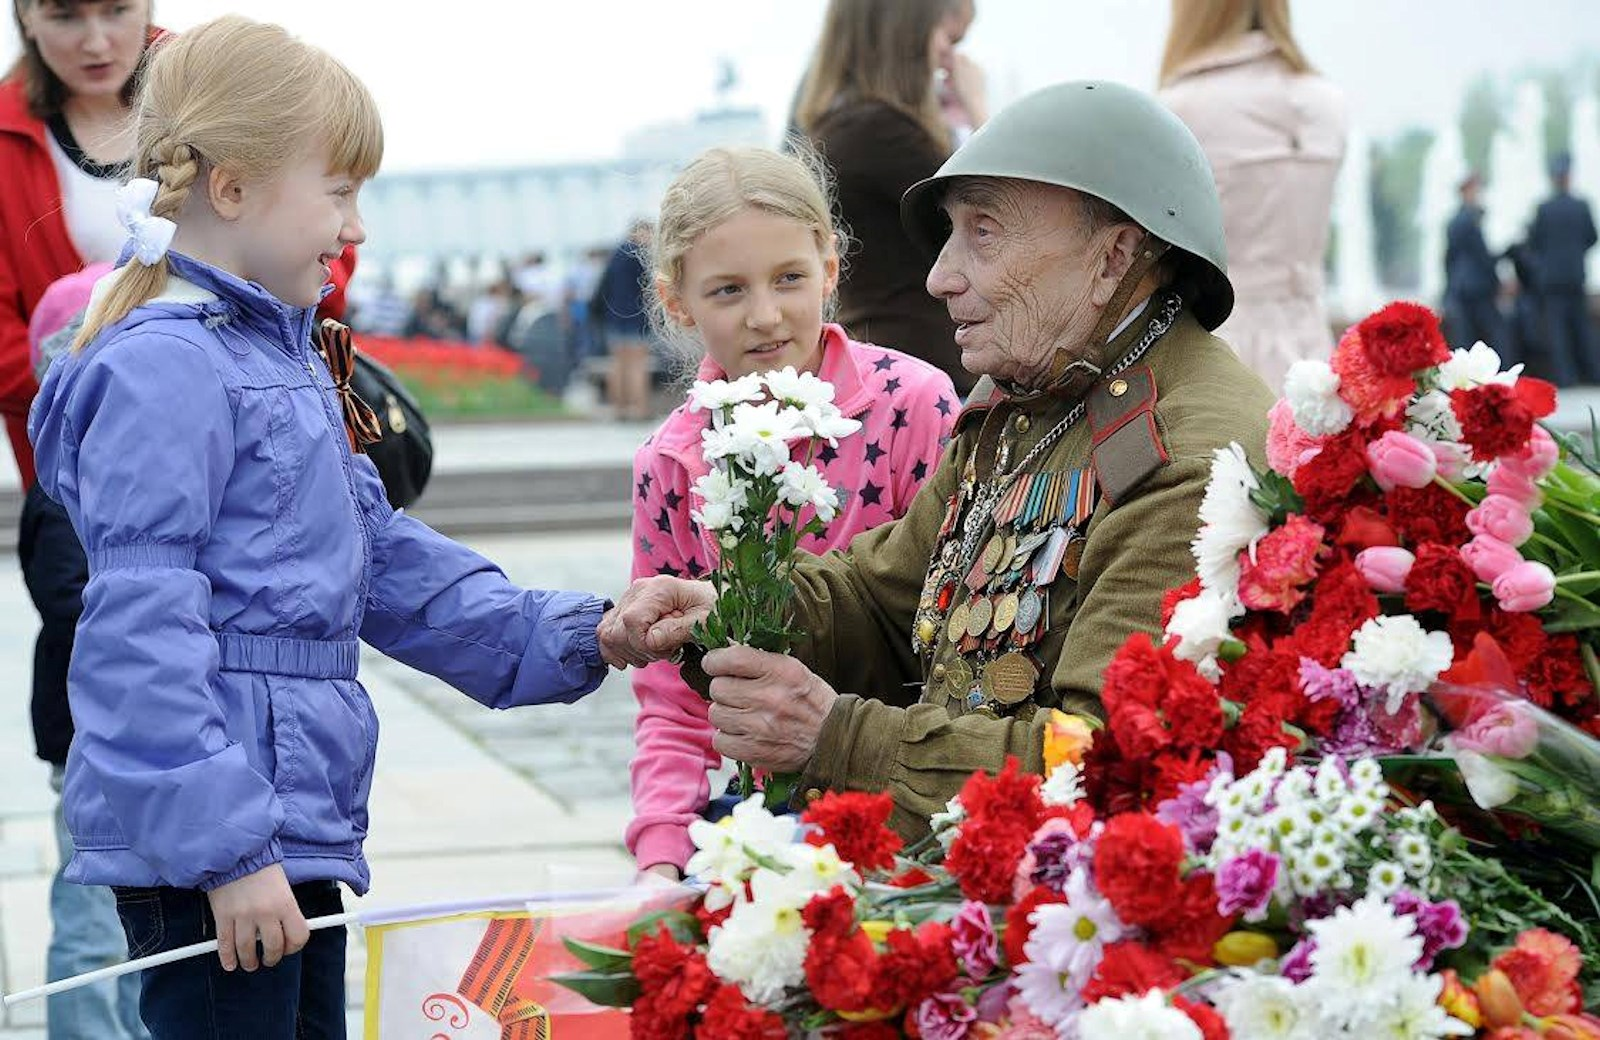 00 victory day 01 old veteran russia. 22.04.15